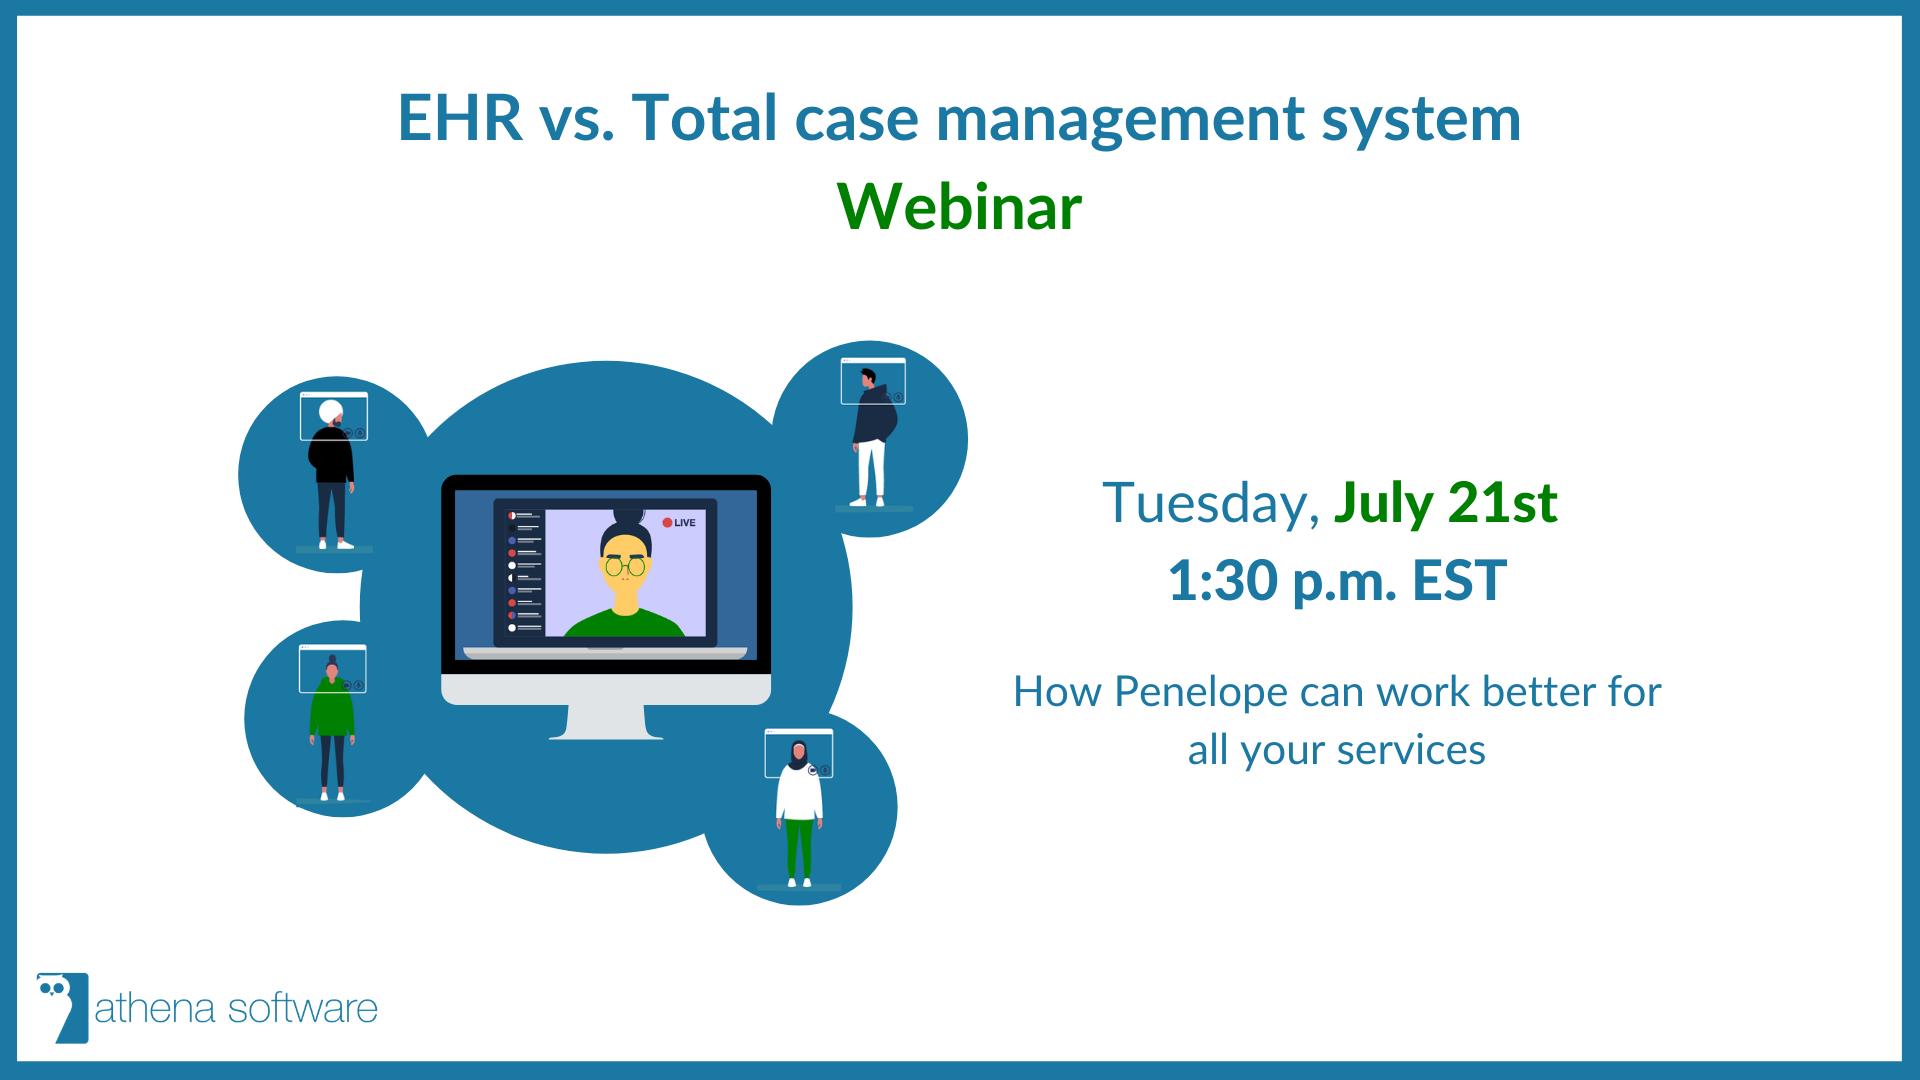 ehr vs case management webinar invitation